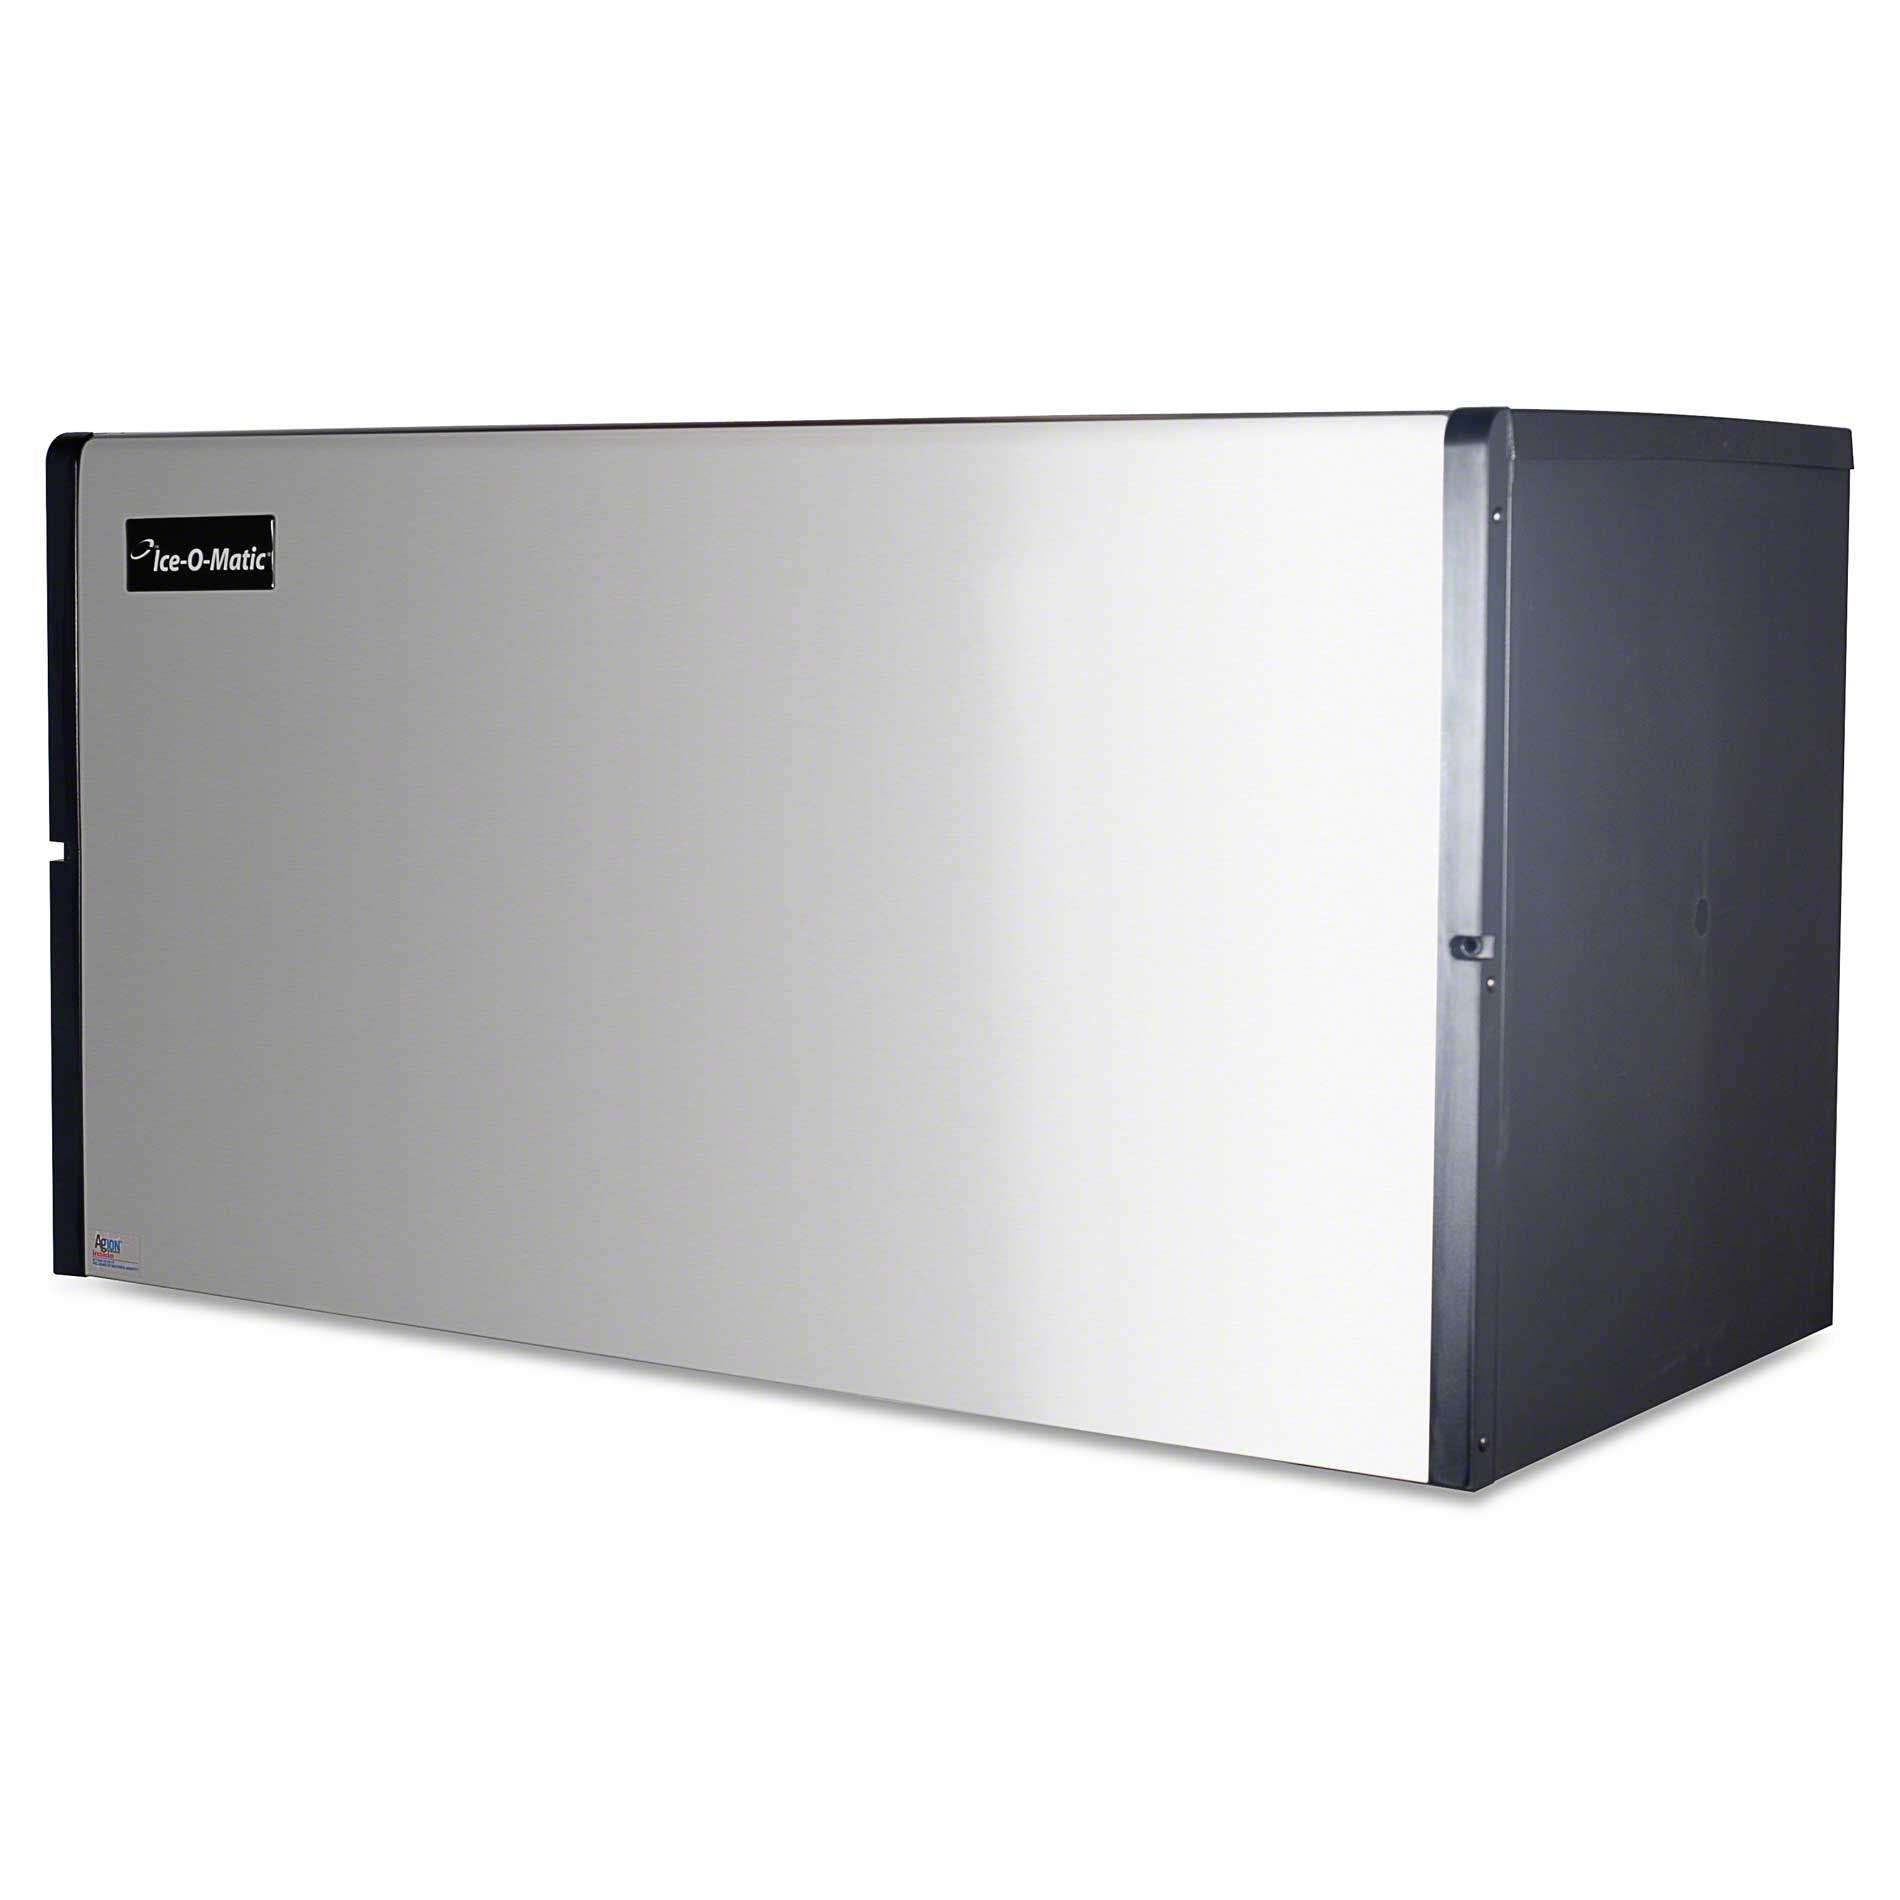 Ice-O-Matic - ICE2106HW 1856 lb Half Size Cube Ice Machine Ice machine sold by Food Service Warehouse